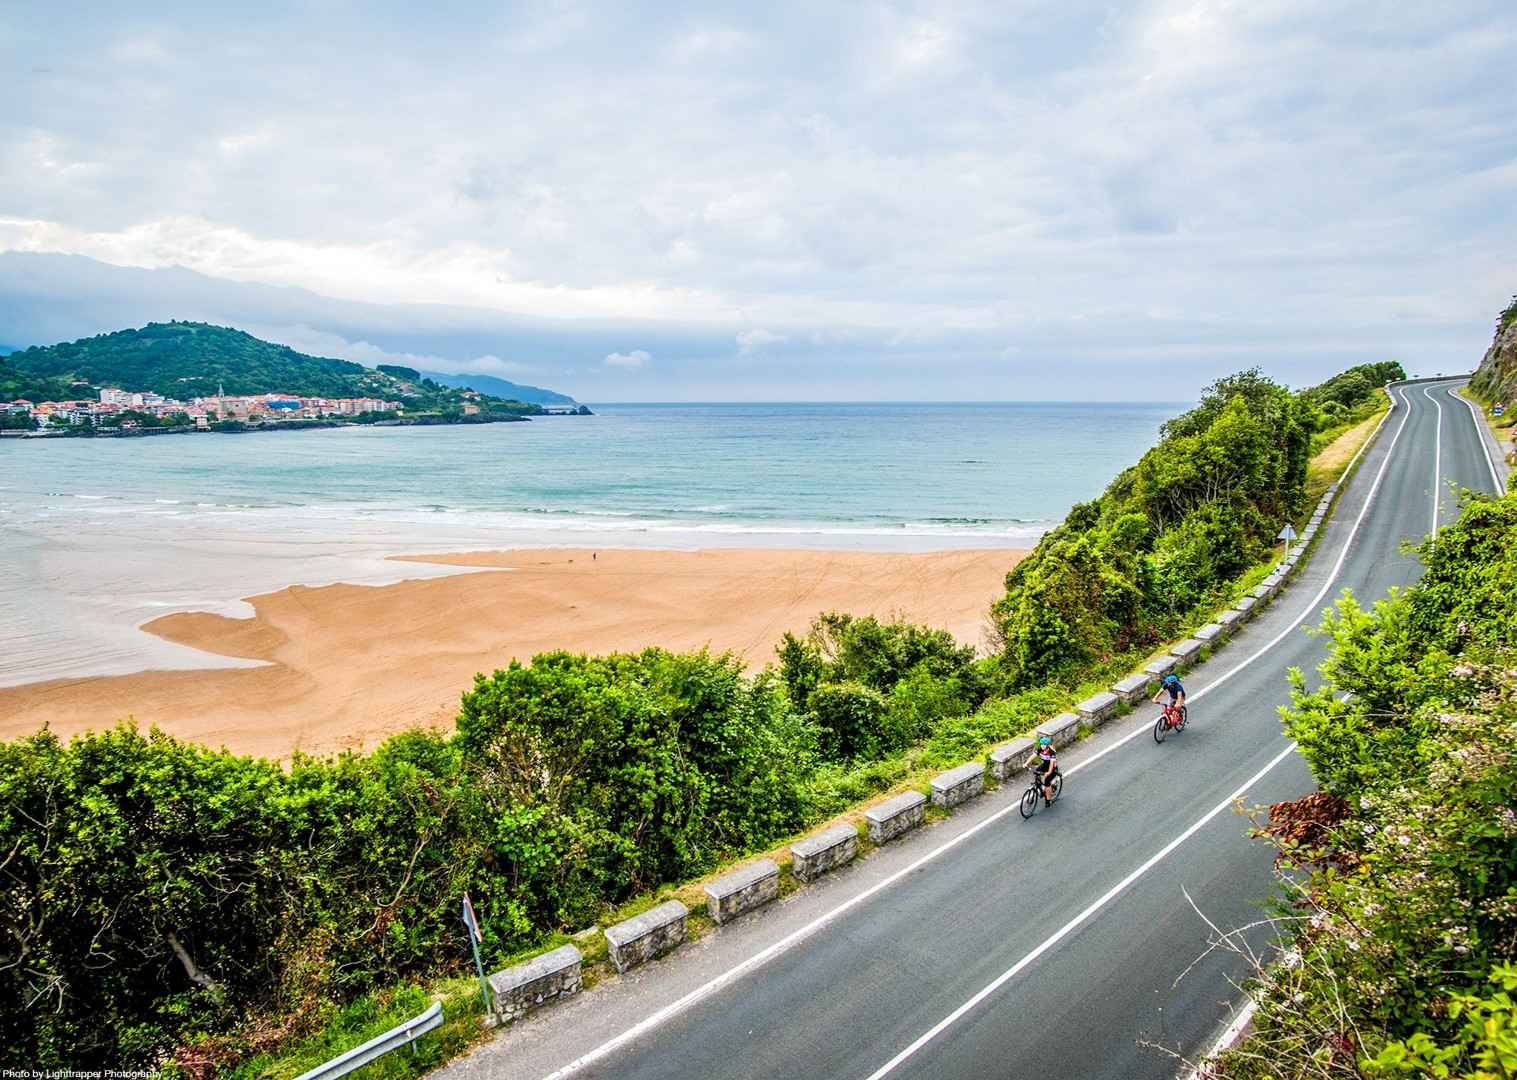 spain-cycling-bilbao-to-san-sebastian-saddle-skeaddle.jpg - NEW! Spain - Bilbao to San Sebastian - Leisure Cycling